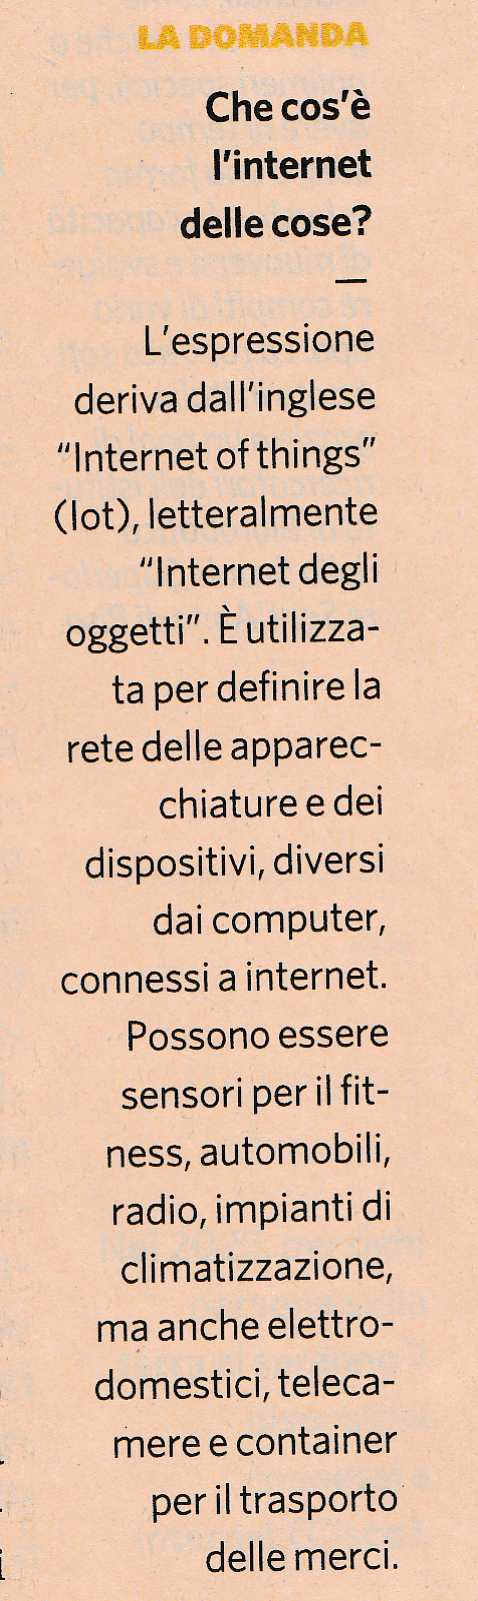 inernet-cose3882